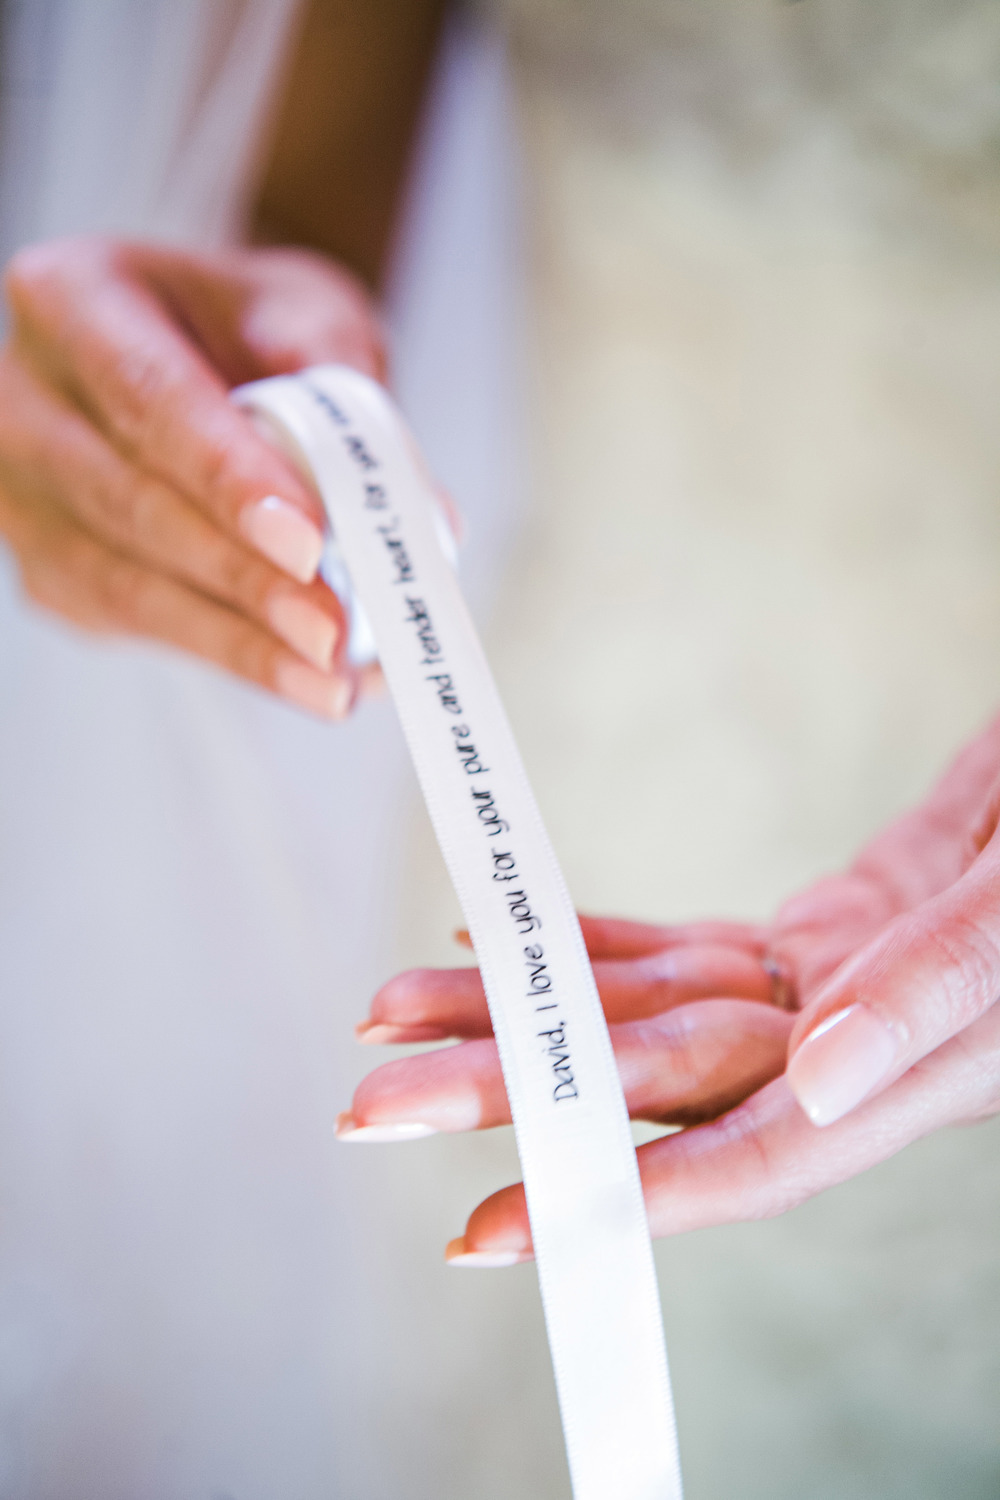 08. LS- ceremony vows, vows of ribbon, napa wedding, vineyard ceremony, ceremony vow display.jpg